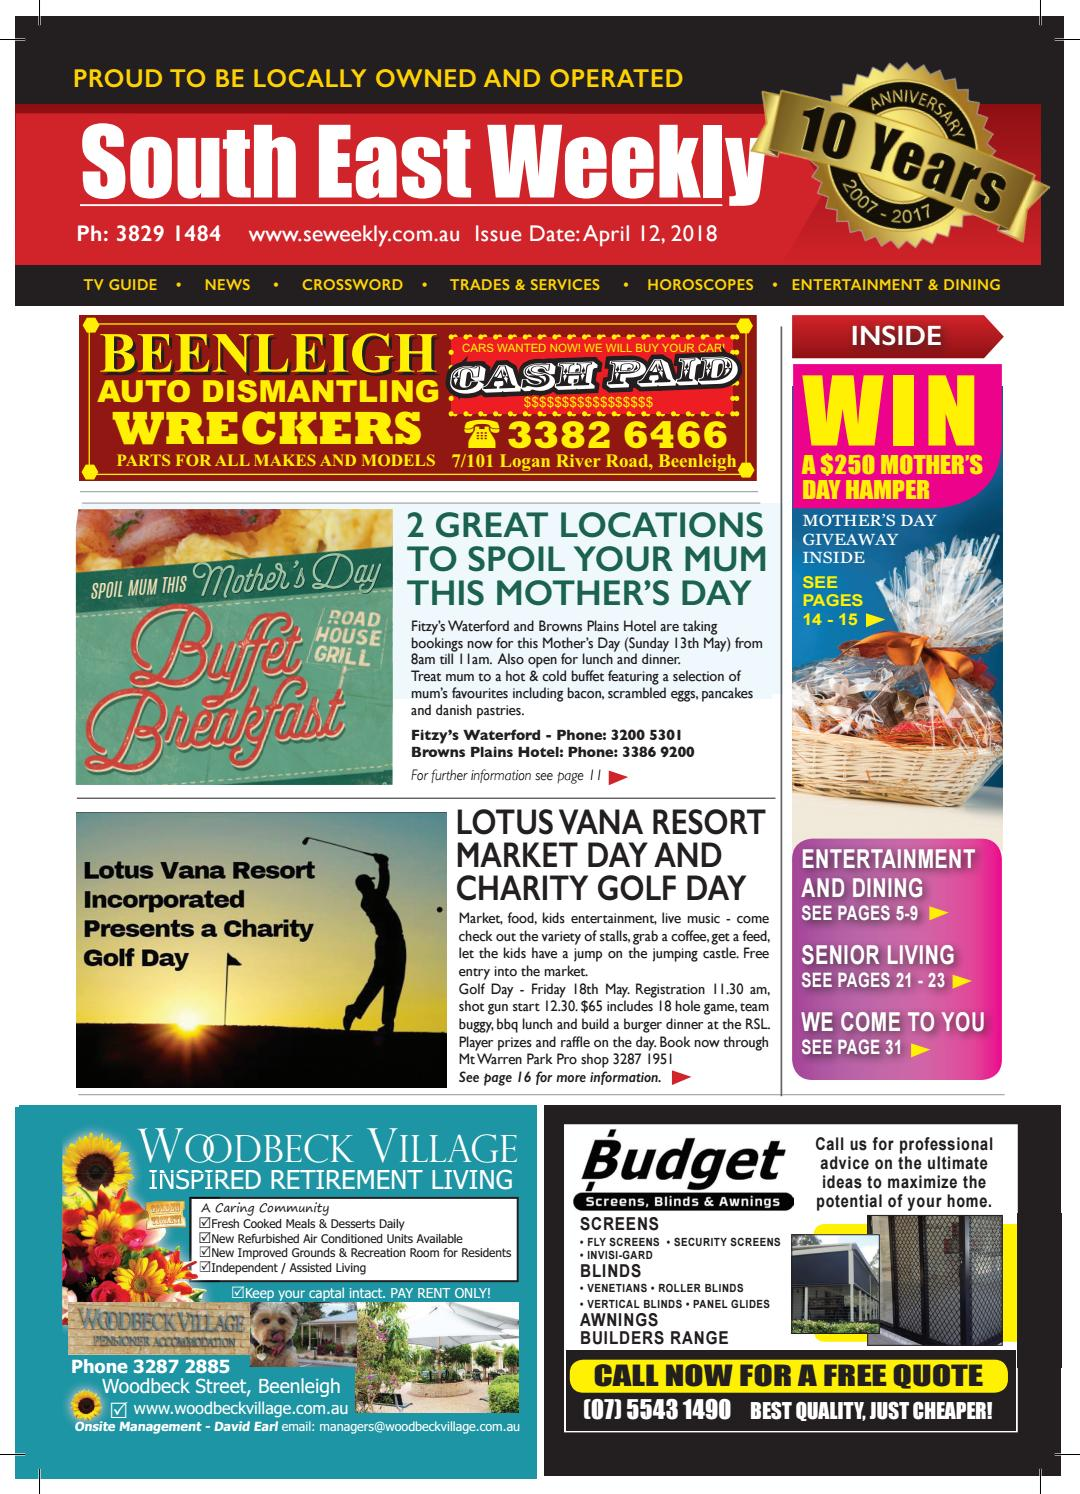 370d28f7793c5 South East Weekly Magazine - April 12, 2018 by South East Weekly ...